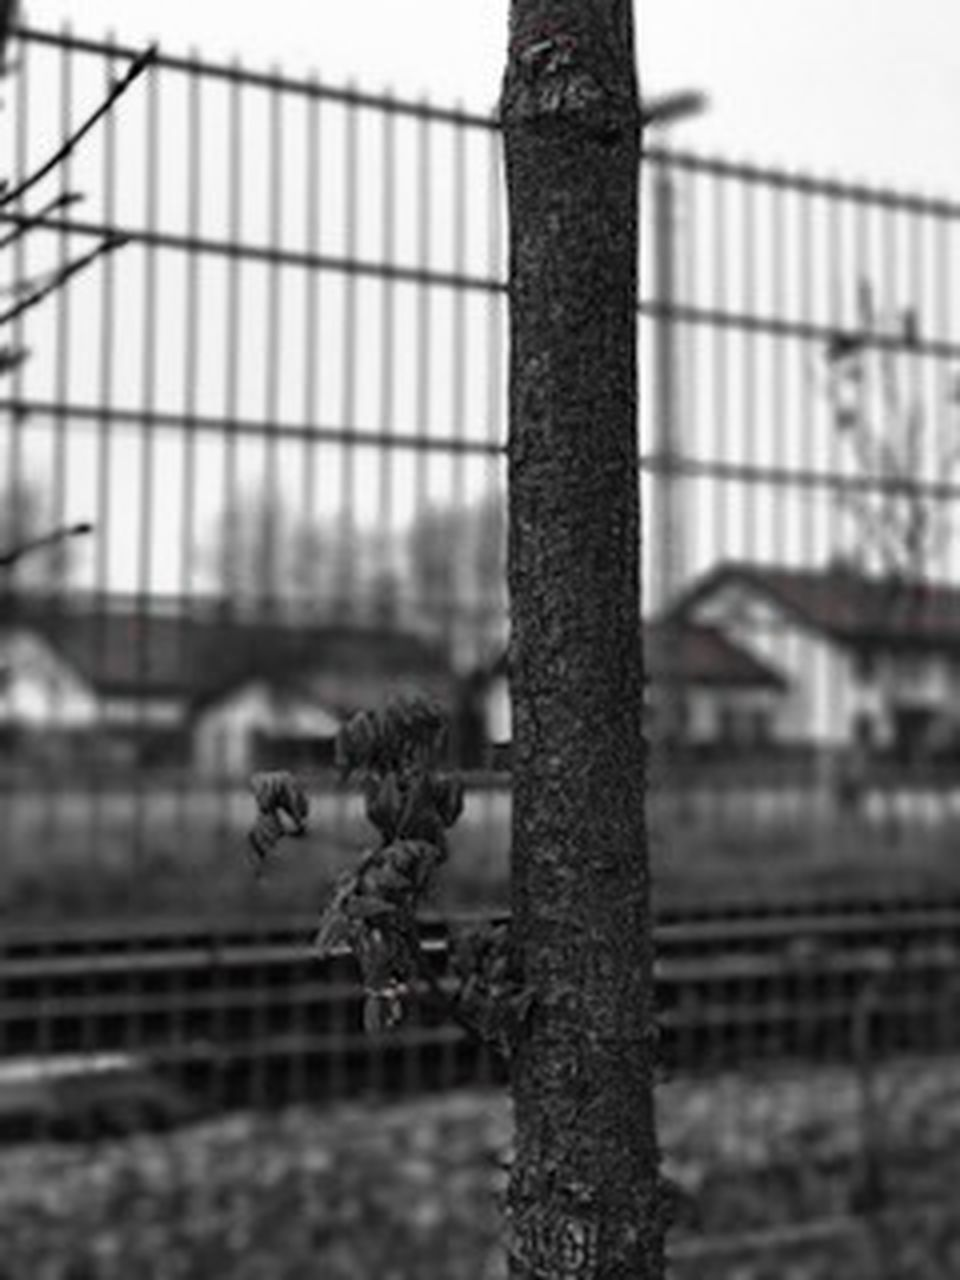 focus on foreground, prison, day, outdoors, no people, close-up